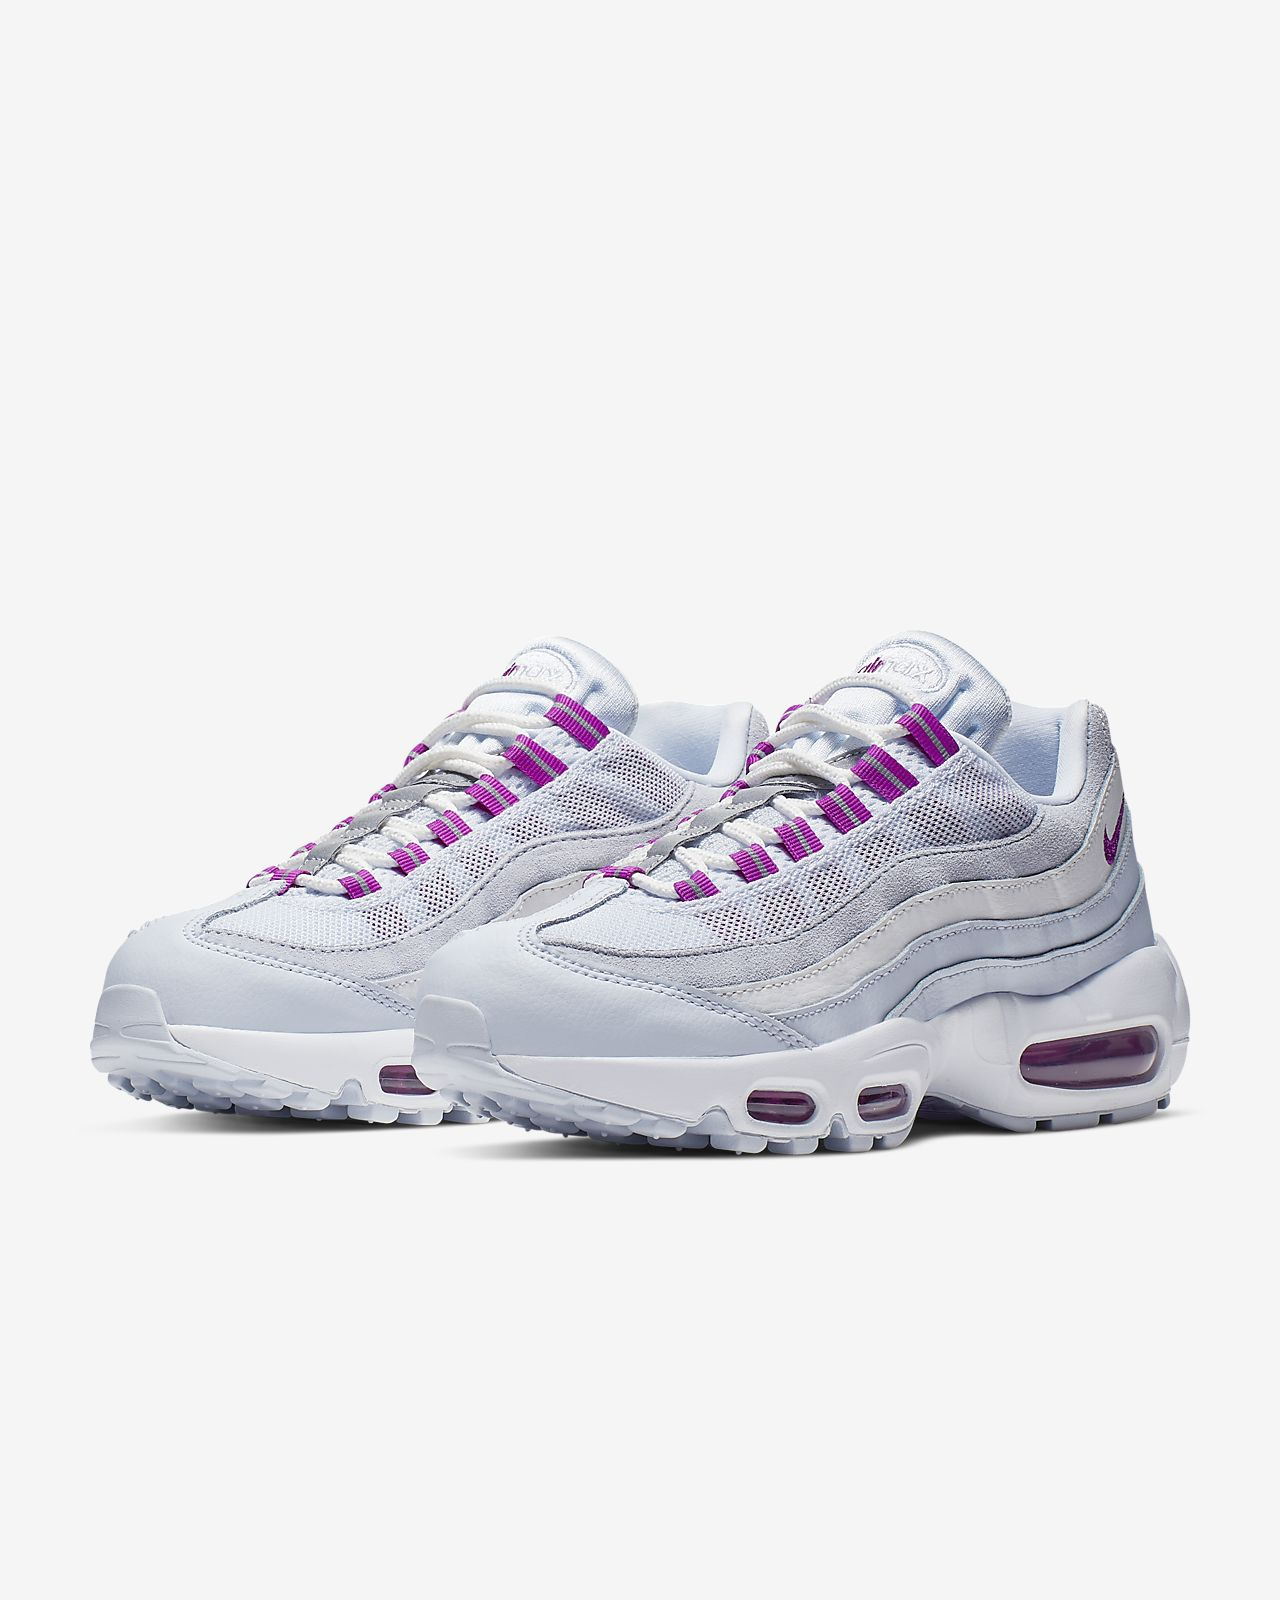 Nike Women's Nike Air Max 95 Se Sneaker, Size 5.5 M Pink from NORDSTROM | more